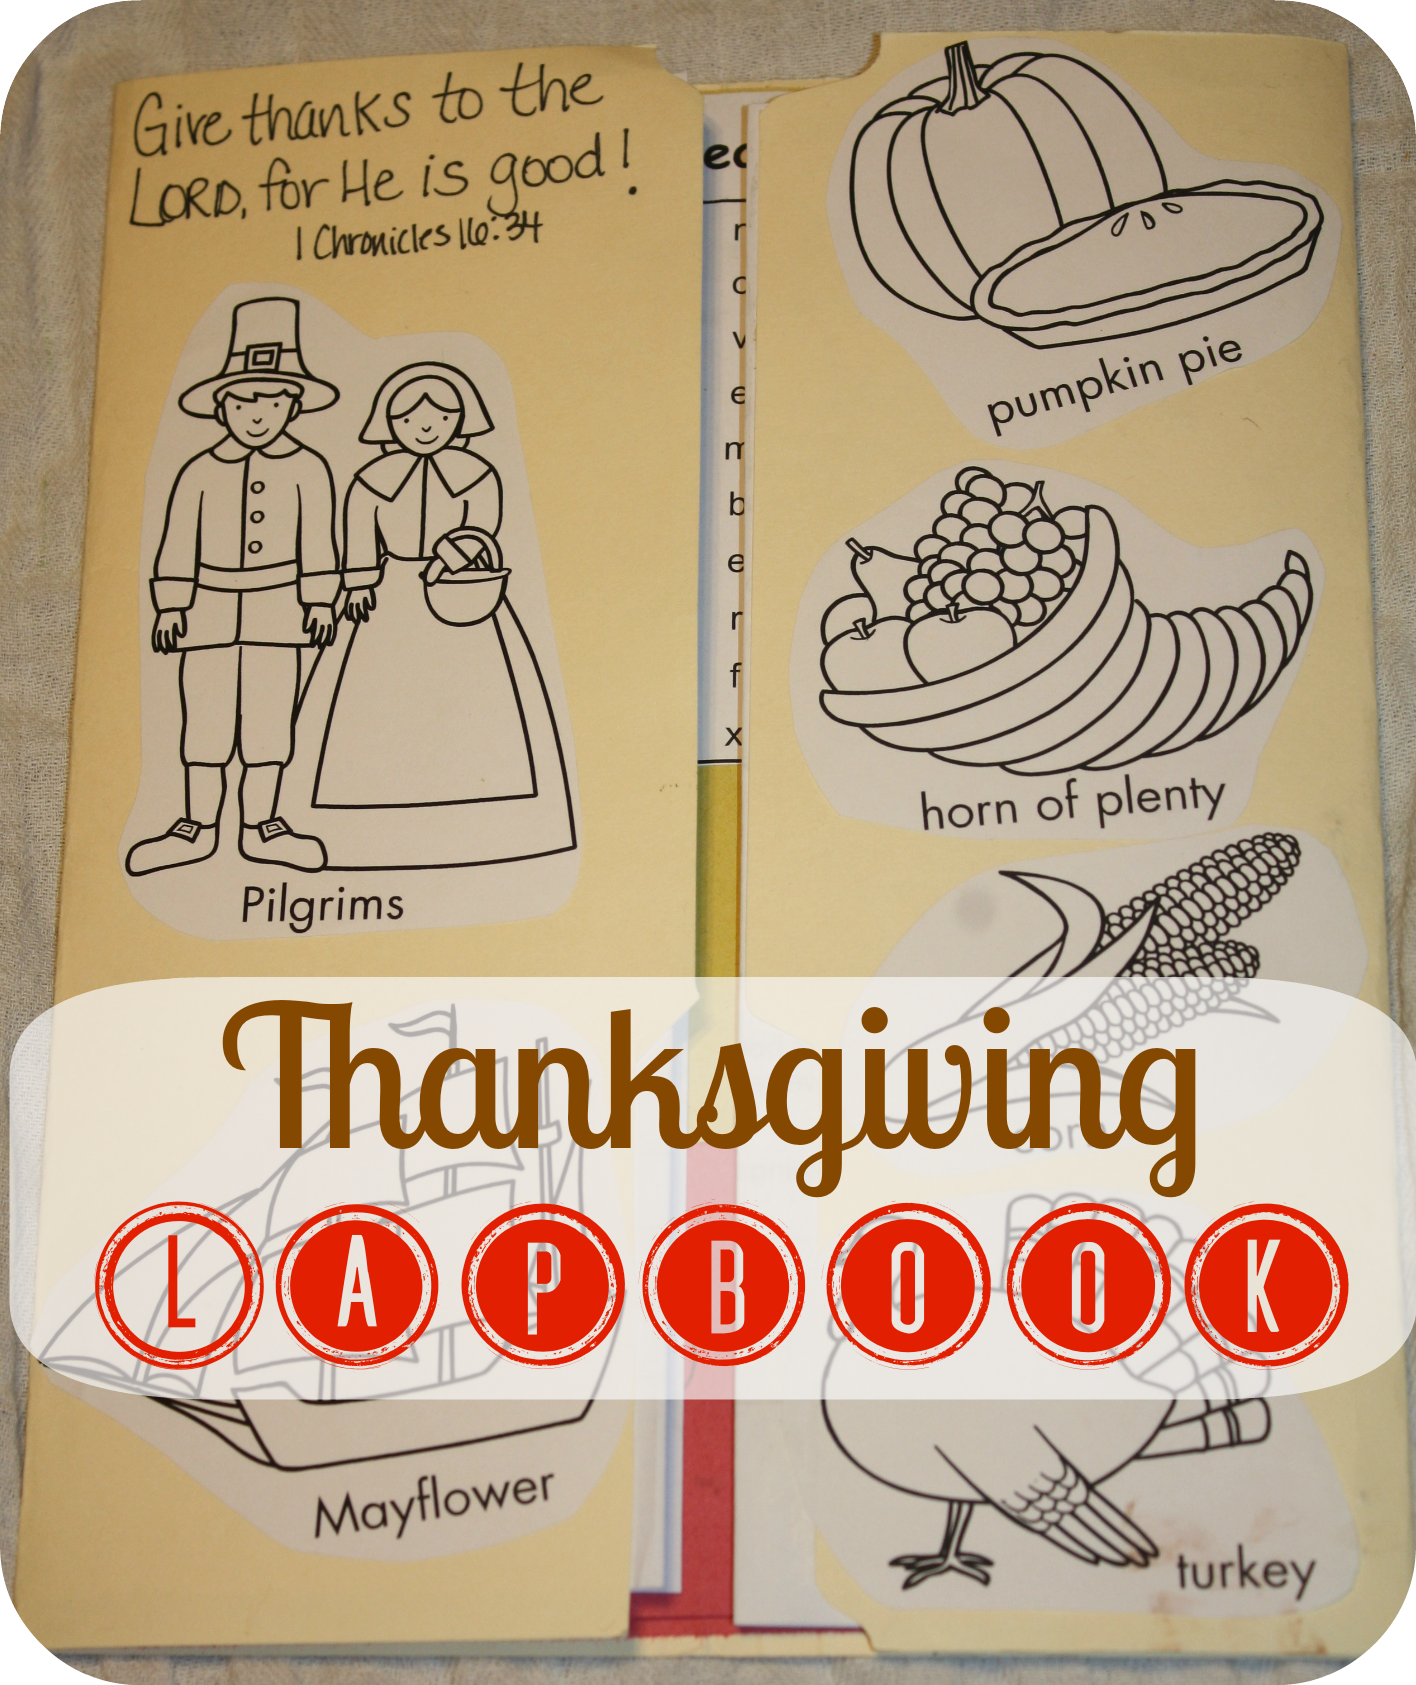 Thanksgiving Cookbook Cover : Thanksgiving lapbook